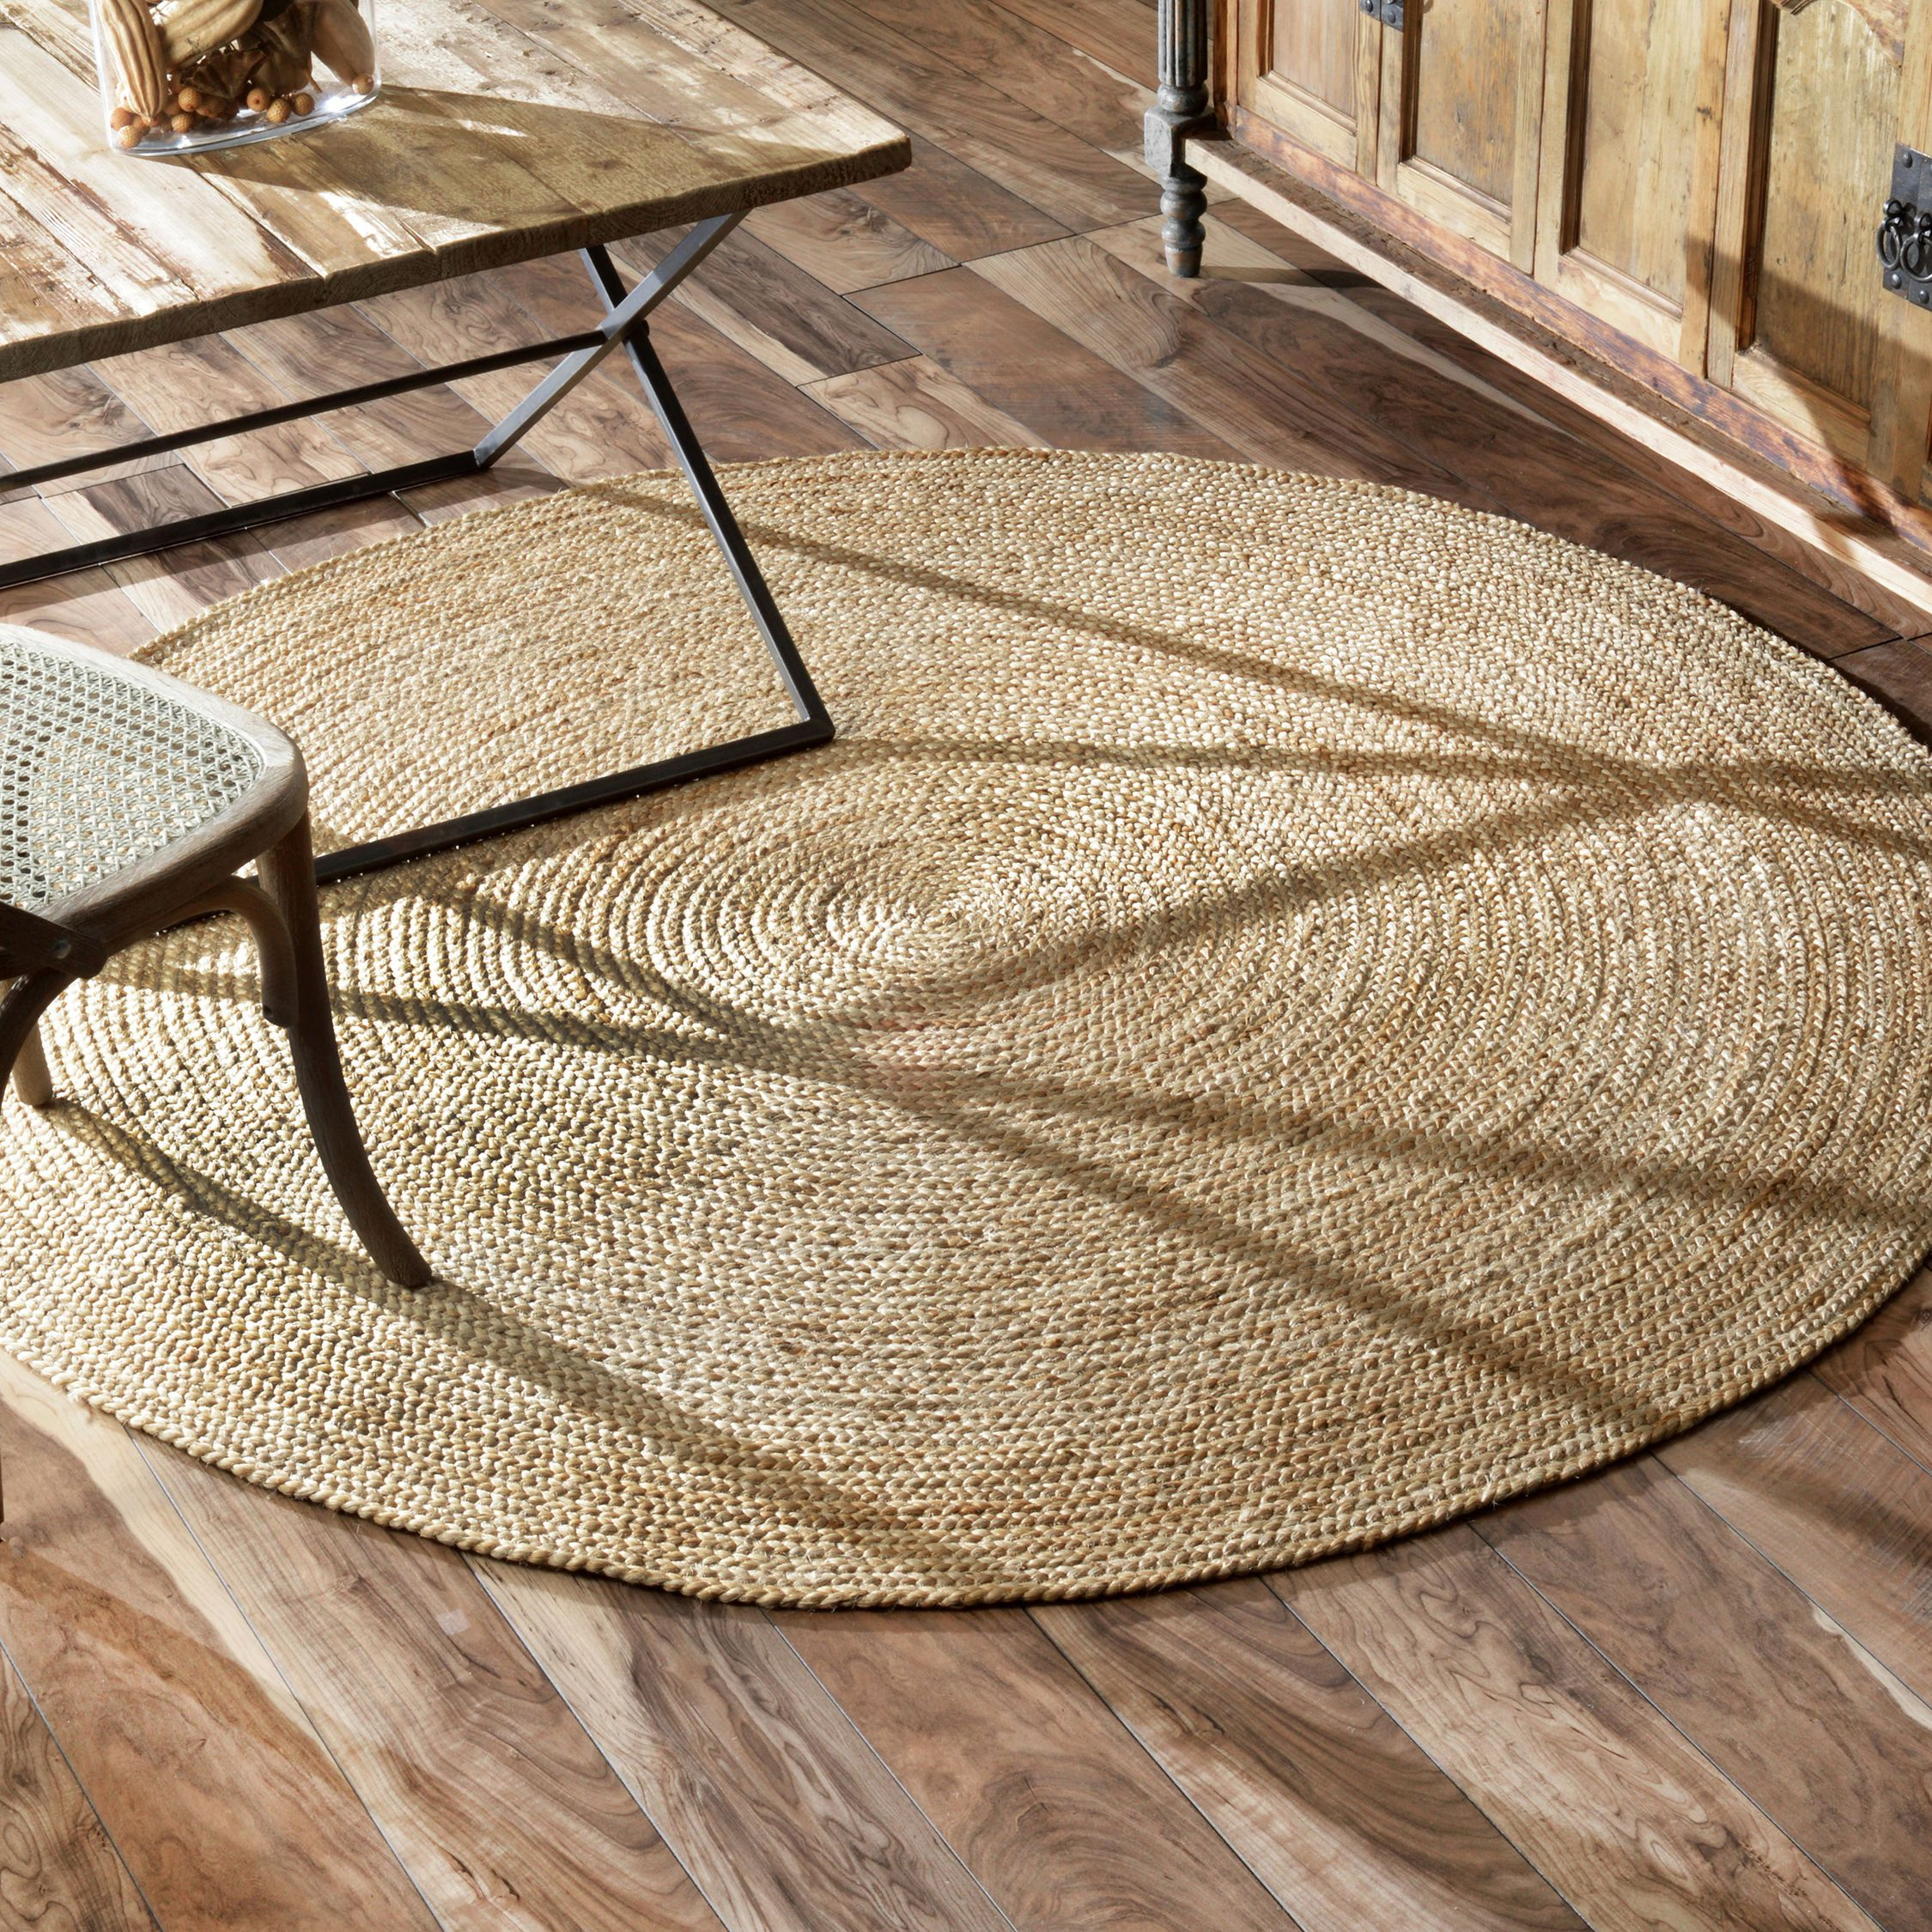 Round Hand Wovenjute Rug 10 Off Now Through January 31st Free Shipping At Plushrugs Com Modernfarmhouse Diningroomrugs K Jute Round Rug Jute Rug Rugs